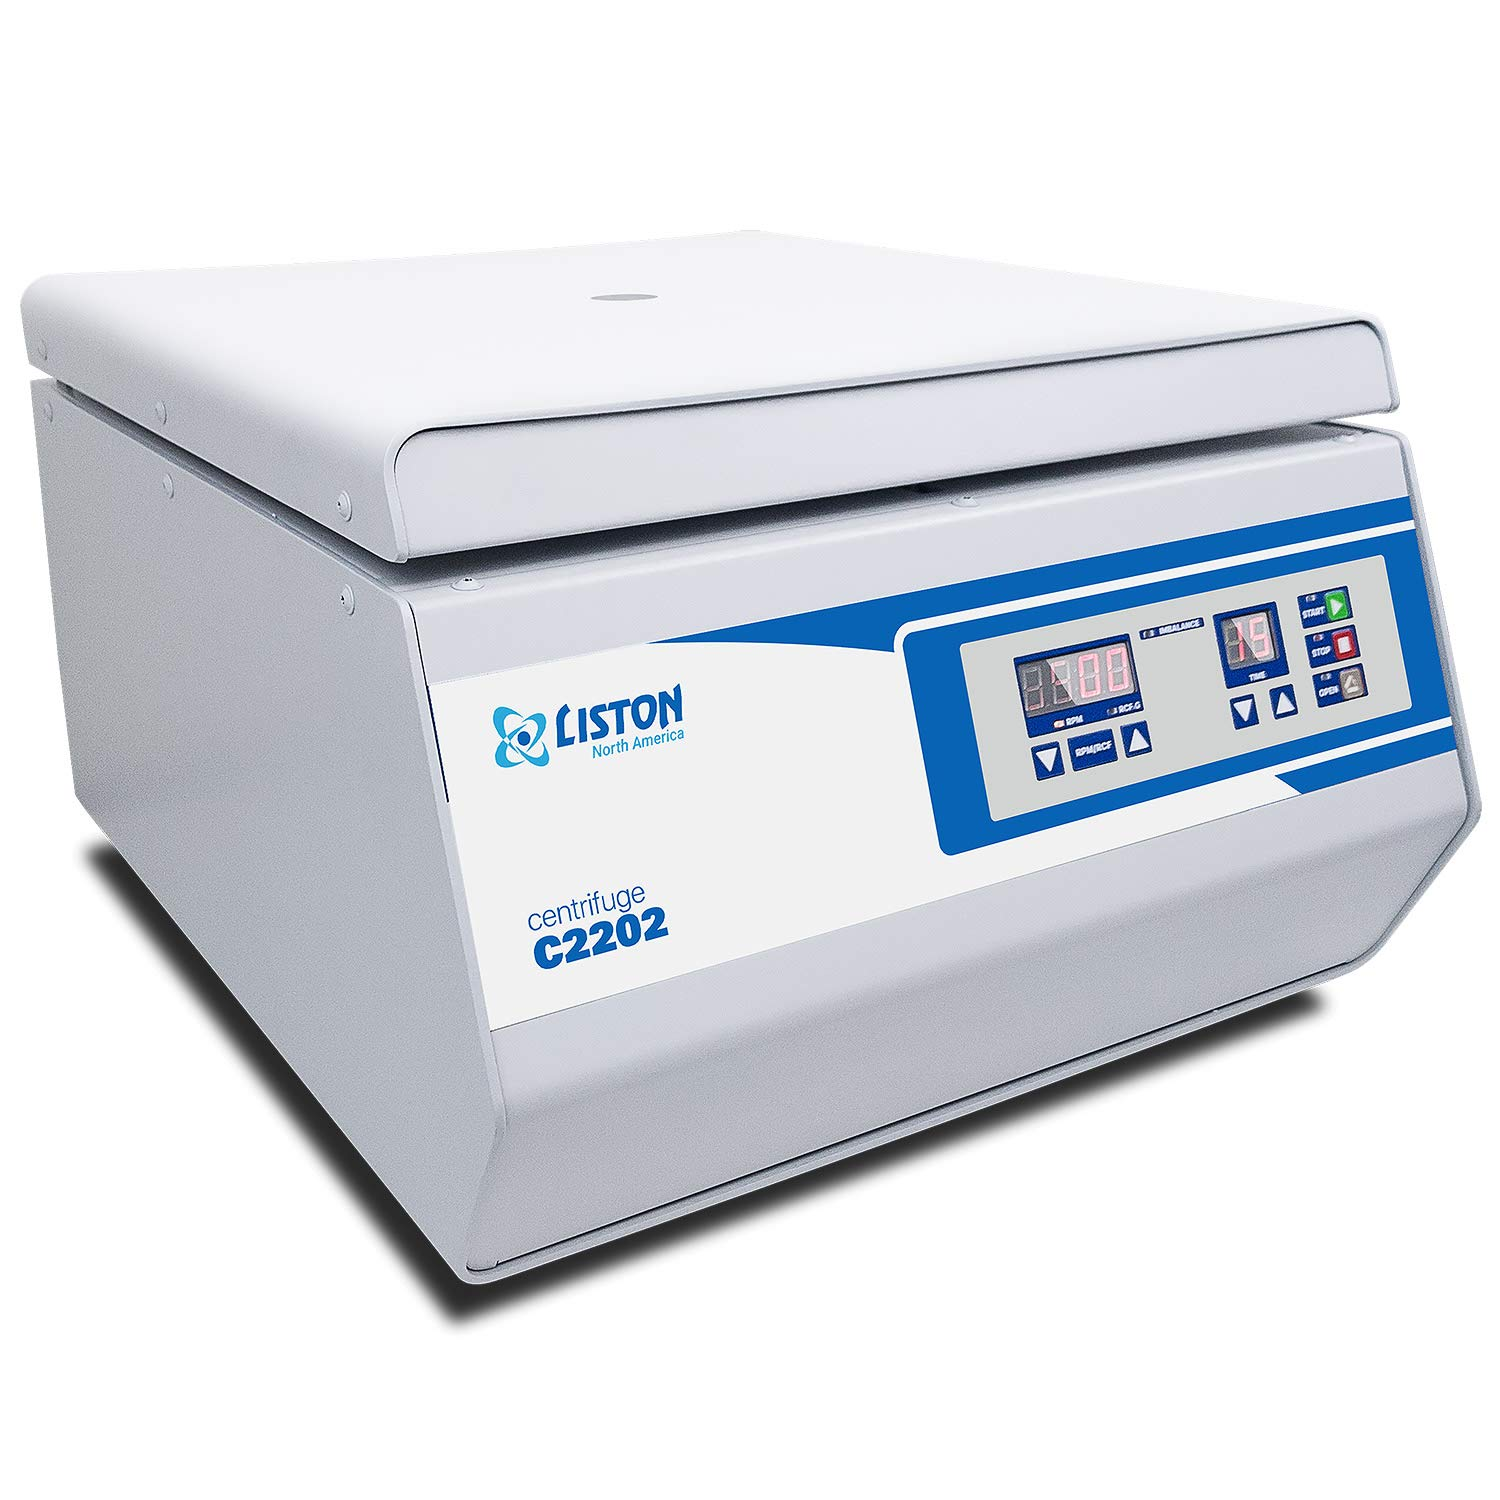 Medical Liston C2202 Benchtop Centrifuge with 4 x 90ml Tube Rotor for Clinical Research Laboratory and Platelets Rich Plasma PRP 3500RPM or 2130RCF